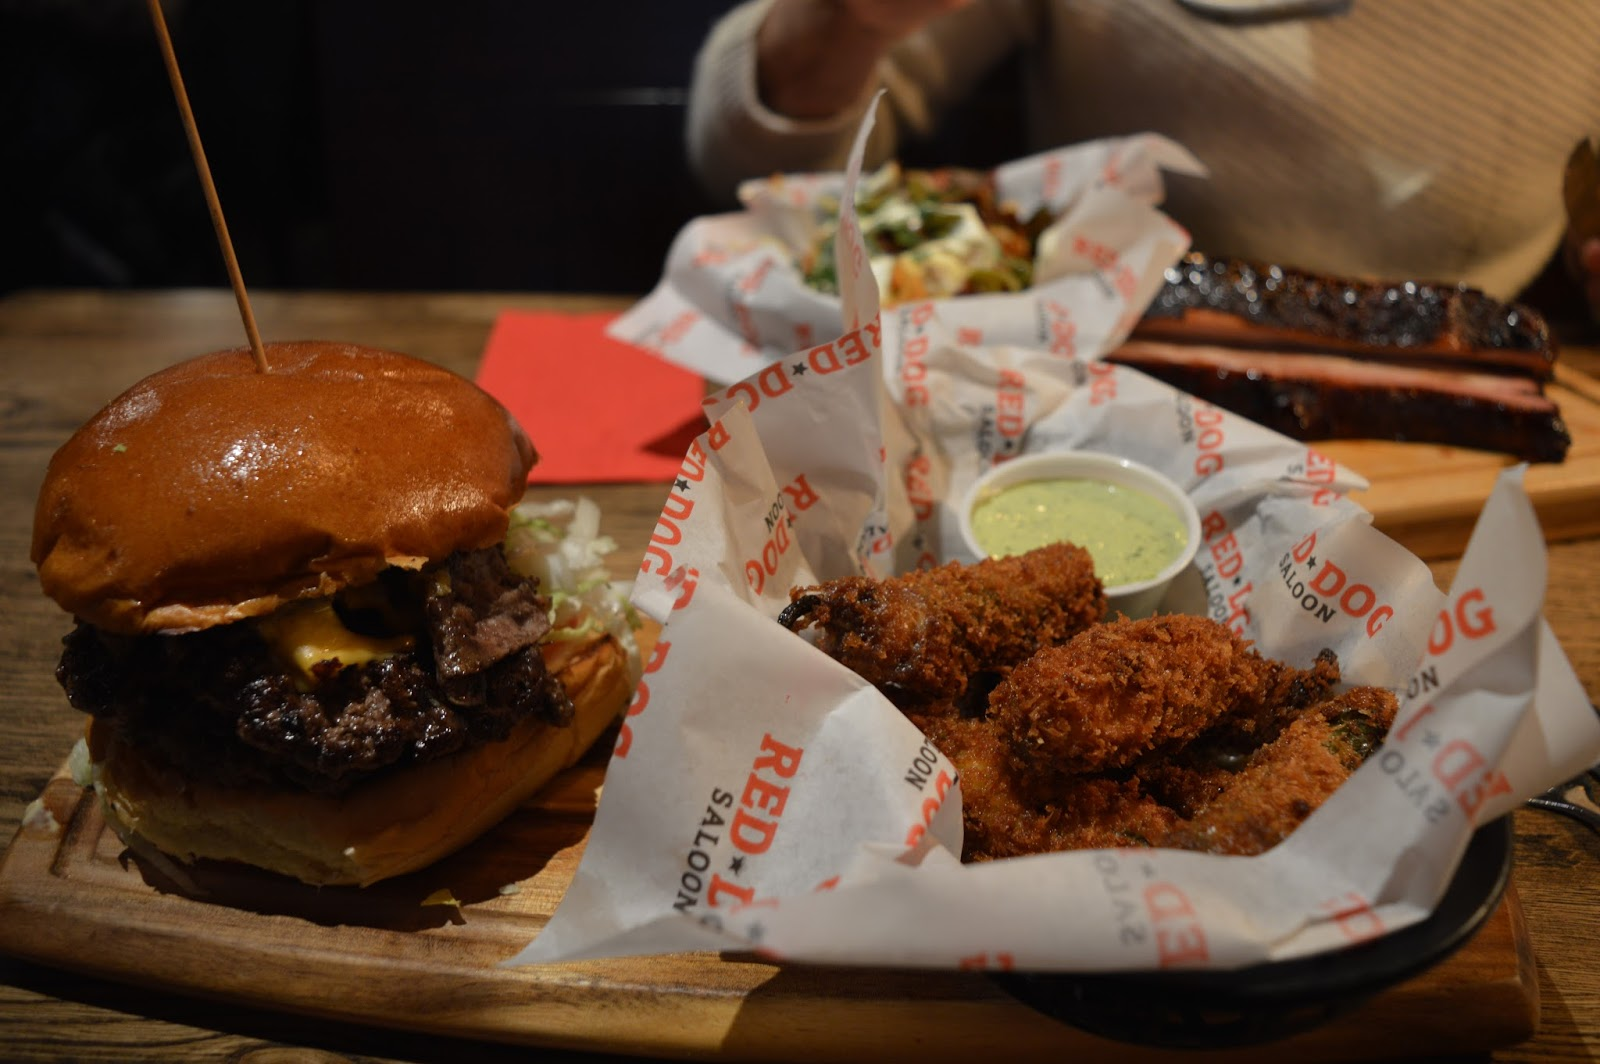 Red Dog Saloon Southampton Review, American BBQ Restaurant in Hampshire, food blogger Hampshire, UK food blogs, Dalry Rose Blog